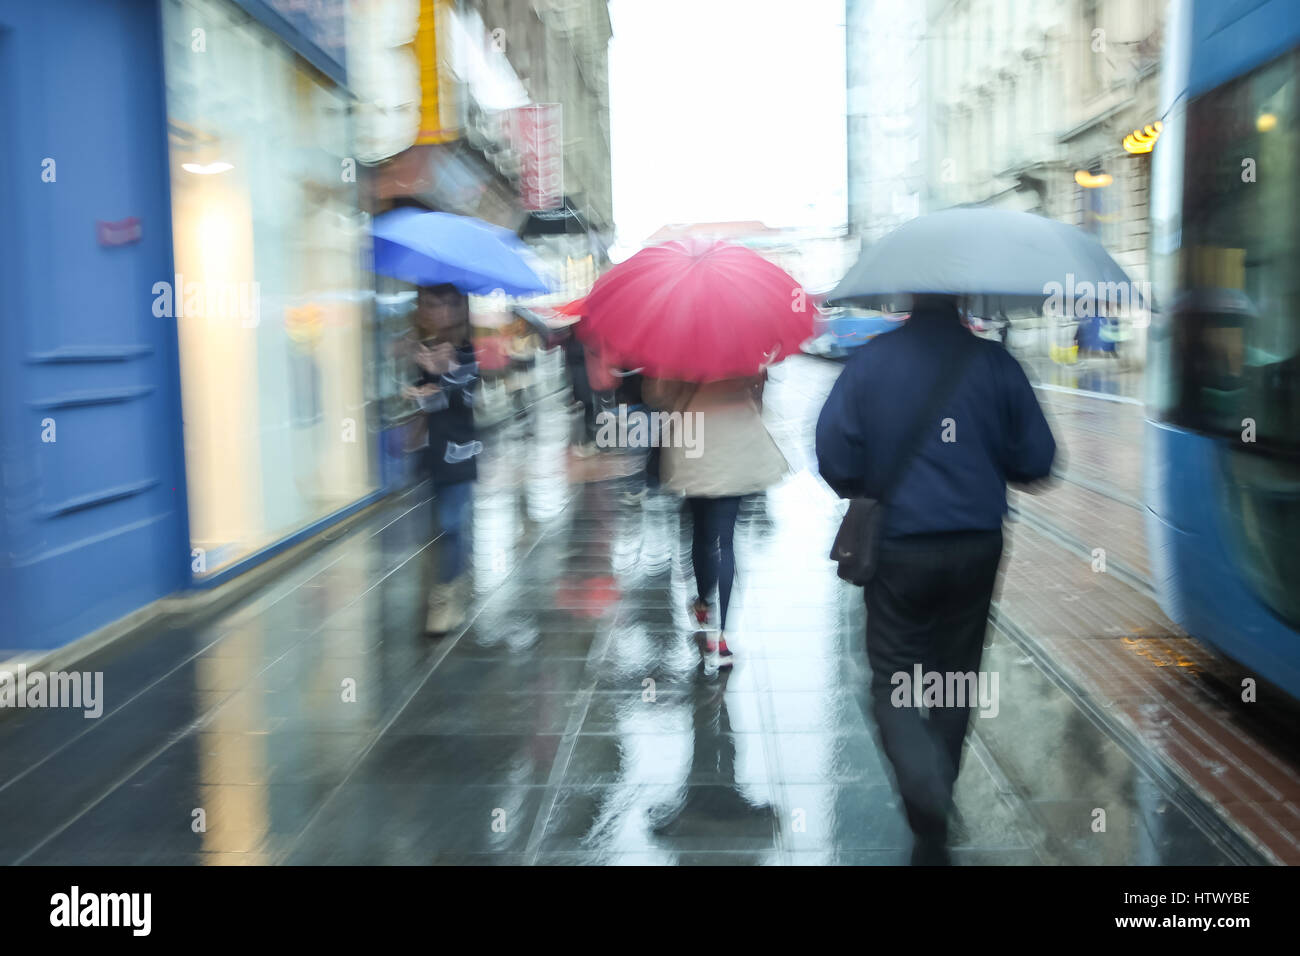 ZAGREB, CROATIA - MAY 22 : A rainy and windy weather on the street of the city center on May 22, 2015 in Zagreb, - Stock Image